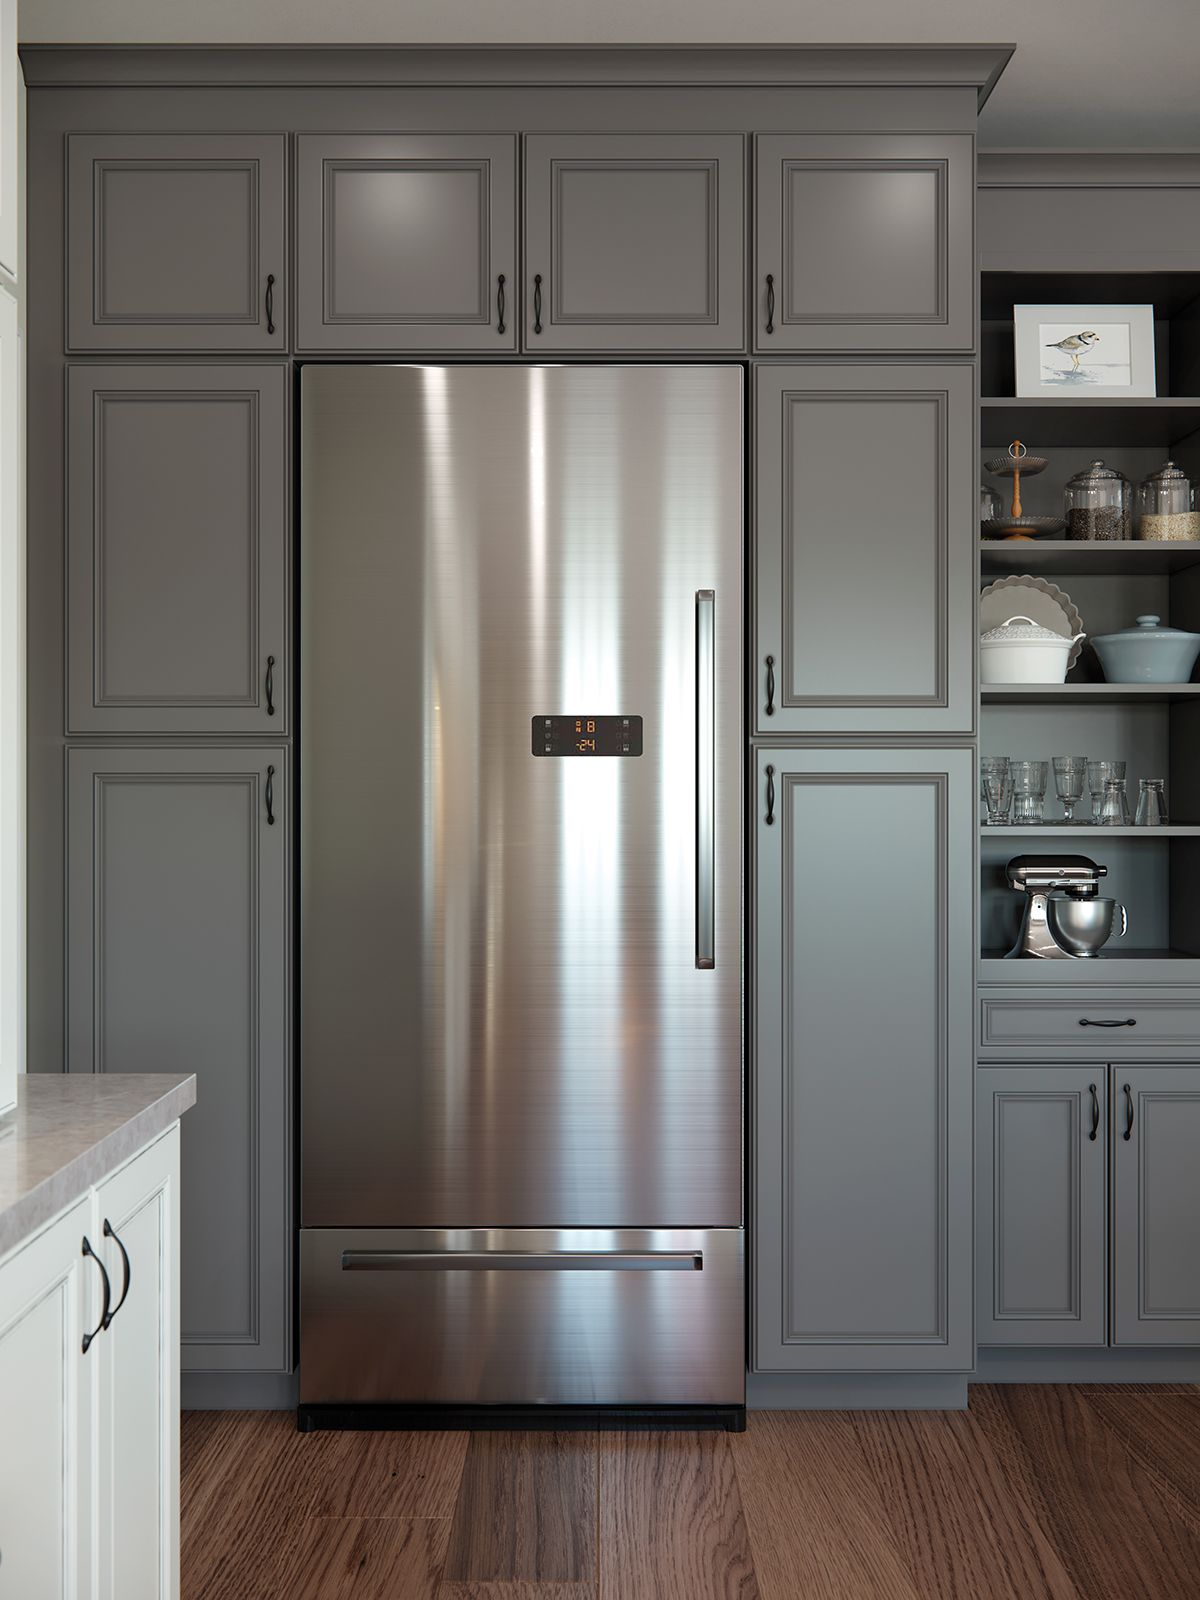 10 THINGS YOU WILL LOVE ABOUT THIS KITCHEN